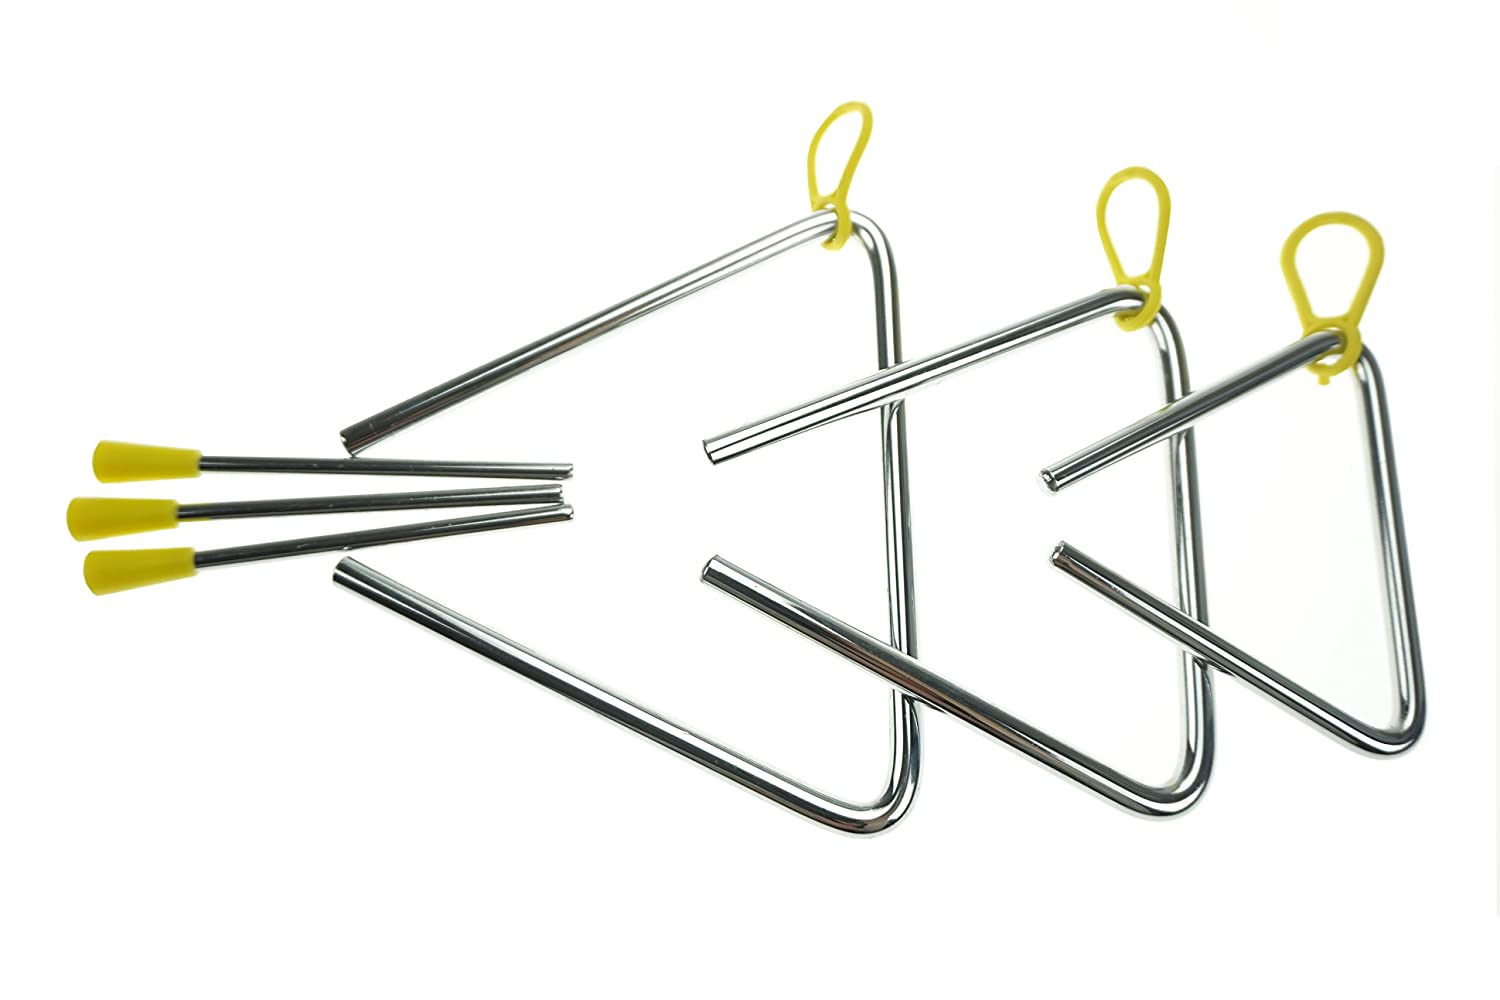 Bilipala Steel Rhythm Musical Percussion Triangle Instruments with Strikers, Set of 3